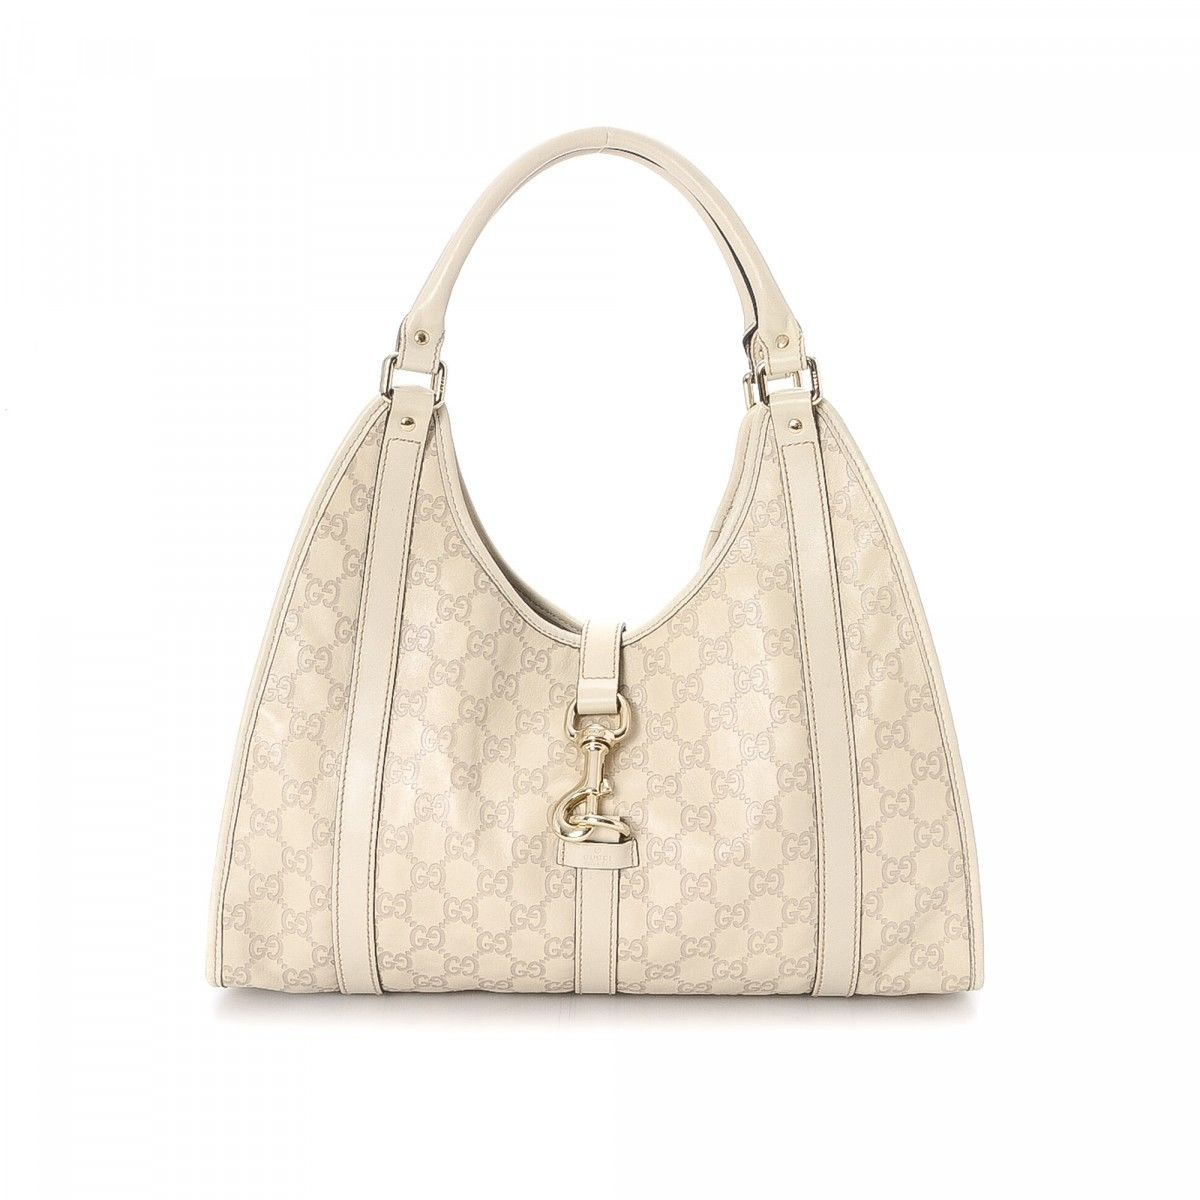 3bcadf4d0f410d Gucci Guccissima Leather Large Joy Hobo Bag | Stanford Center for ...